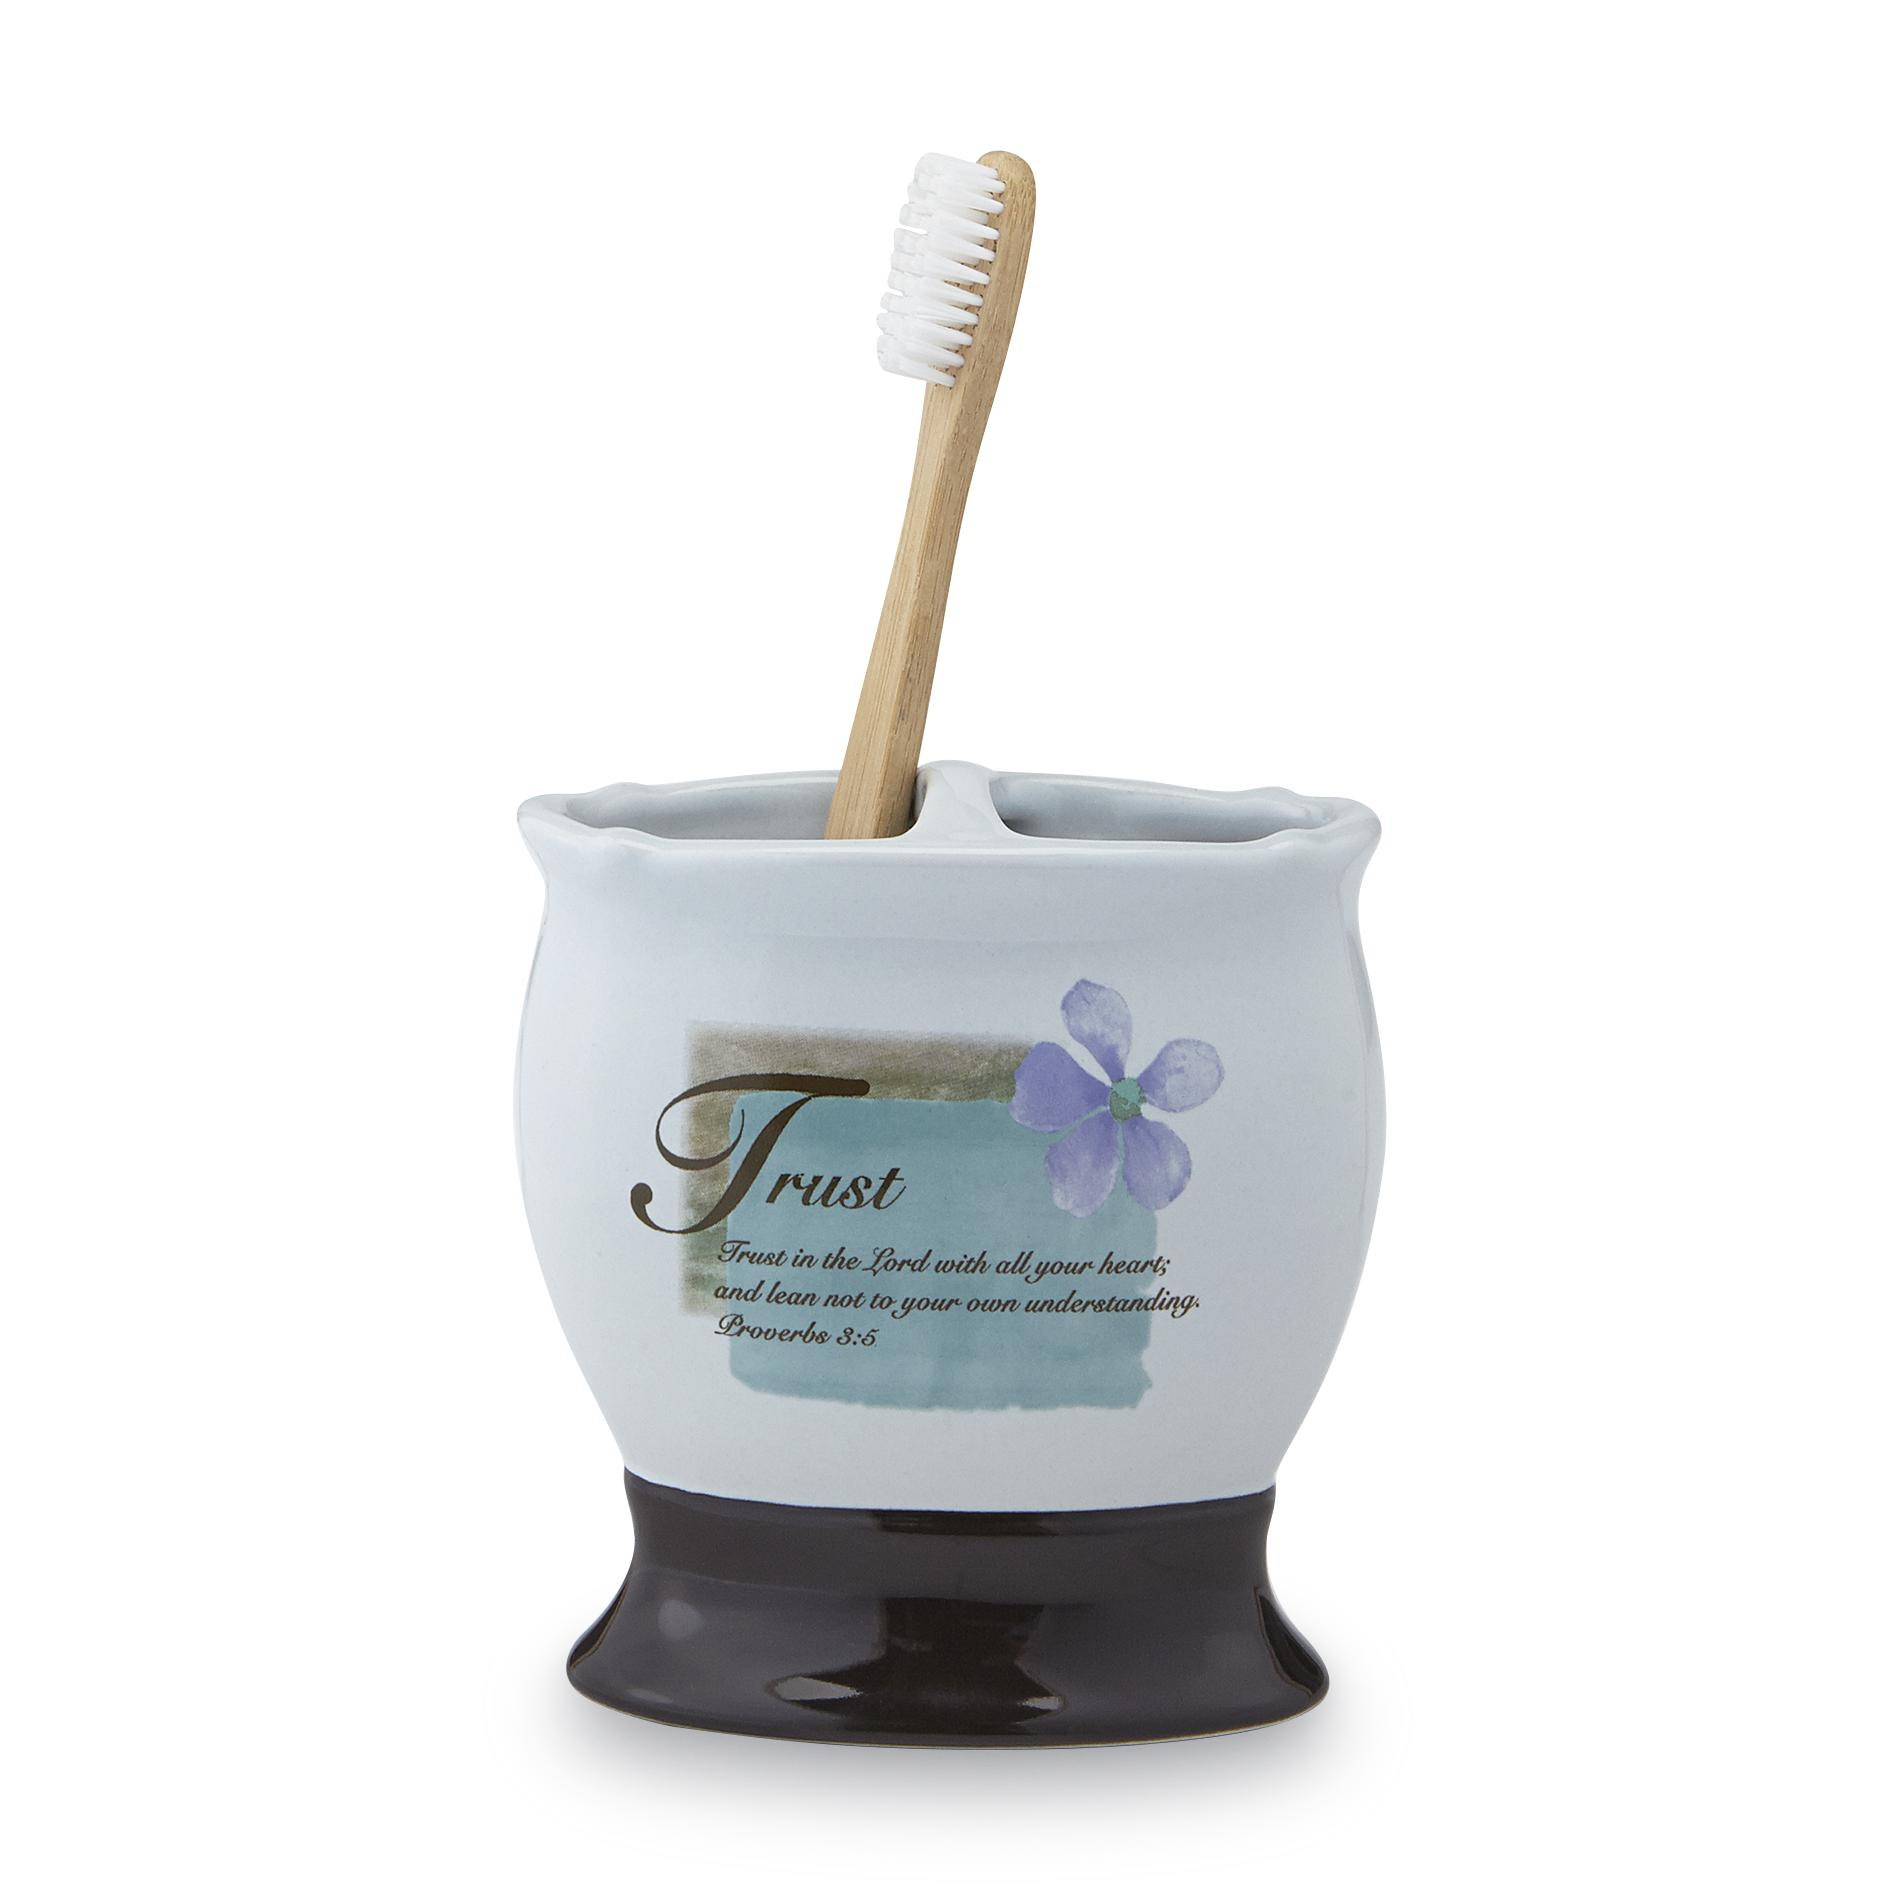 Essential Home Religious Toothbrush Holder